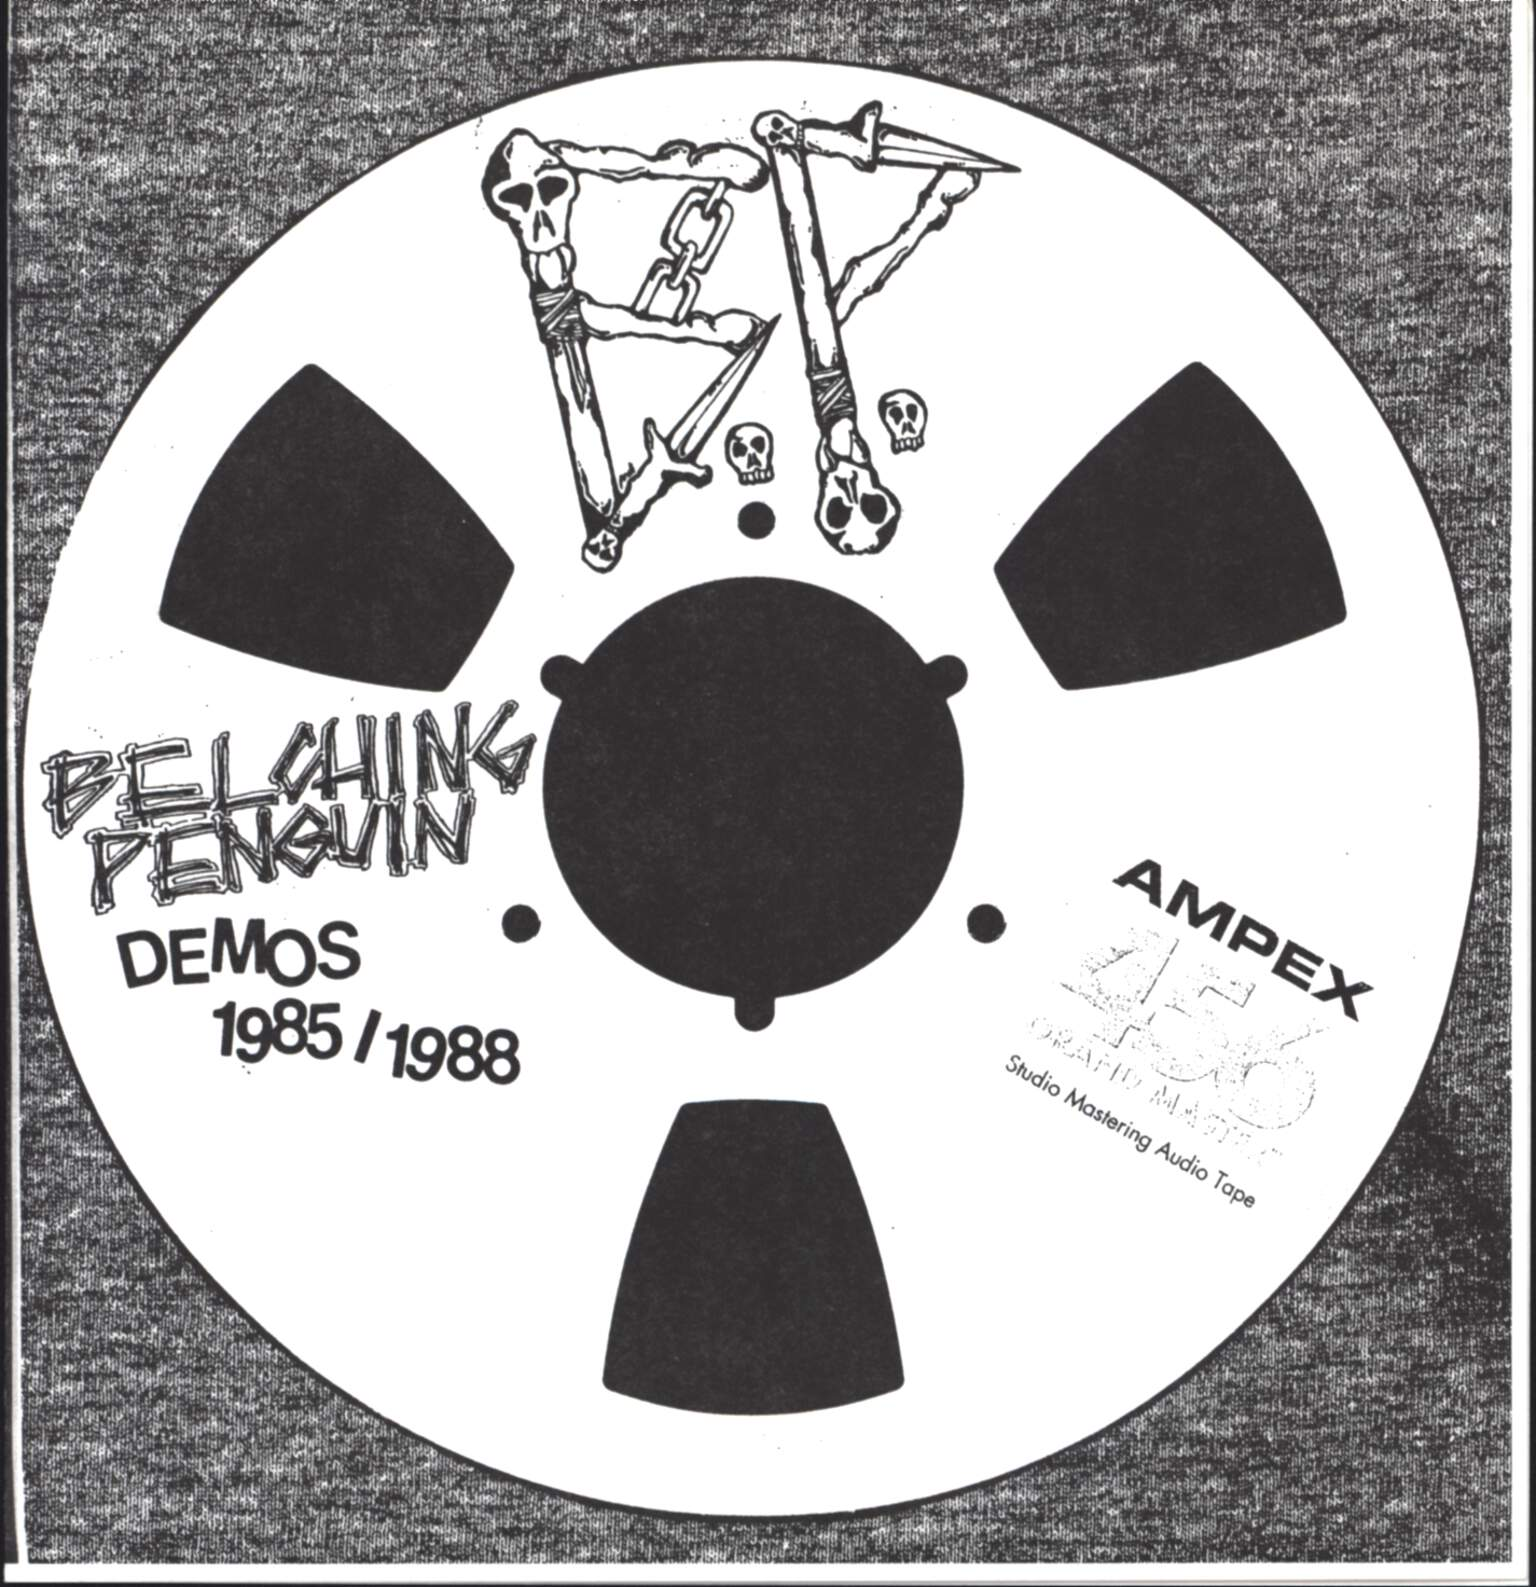 "Belching Penguin: Demos 1985 / 1988, 7"" Single (Vinyl)"